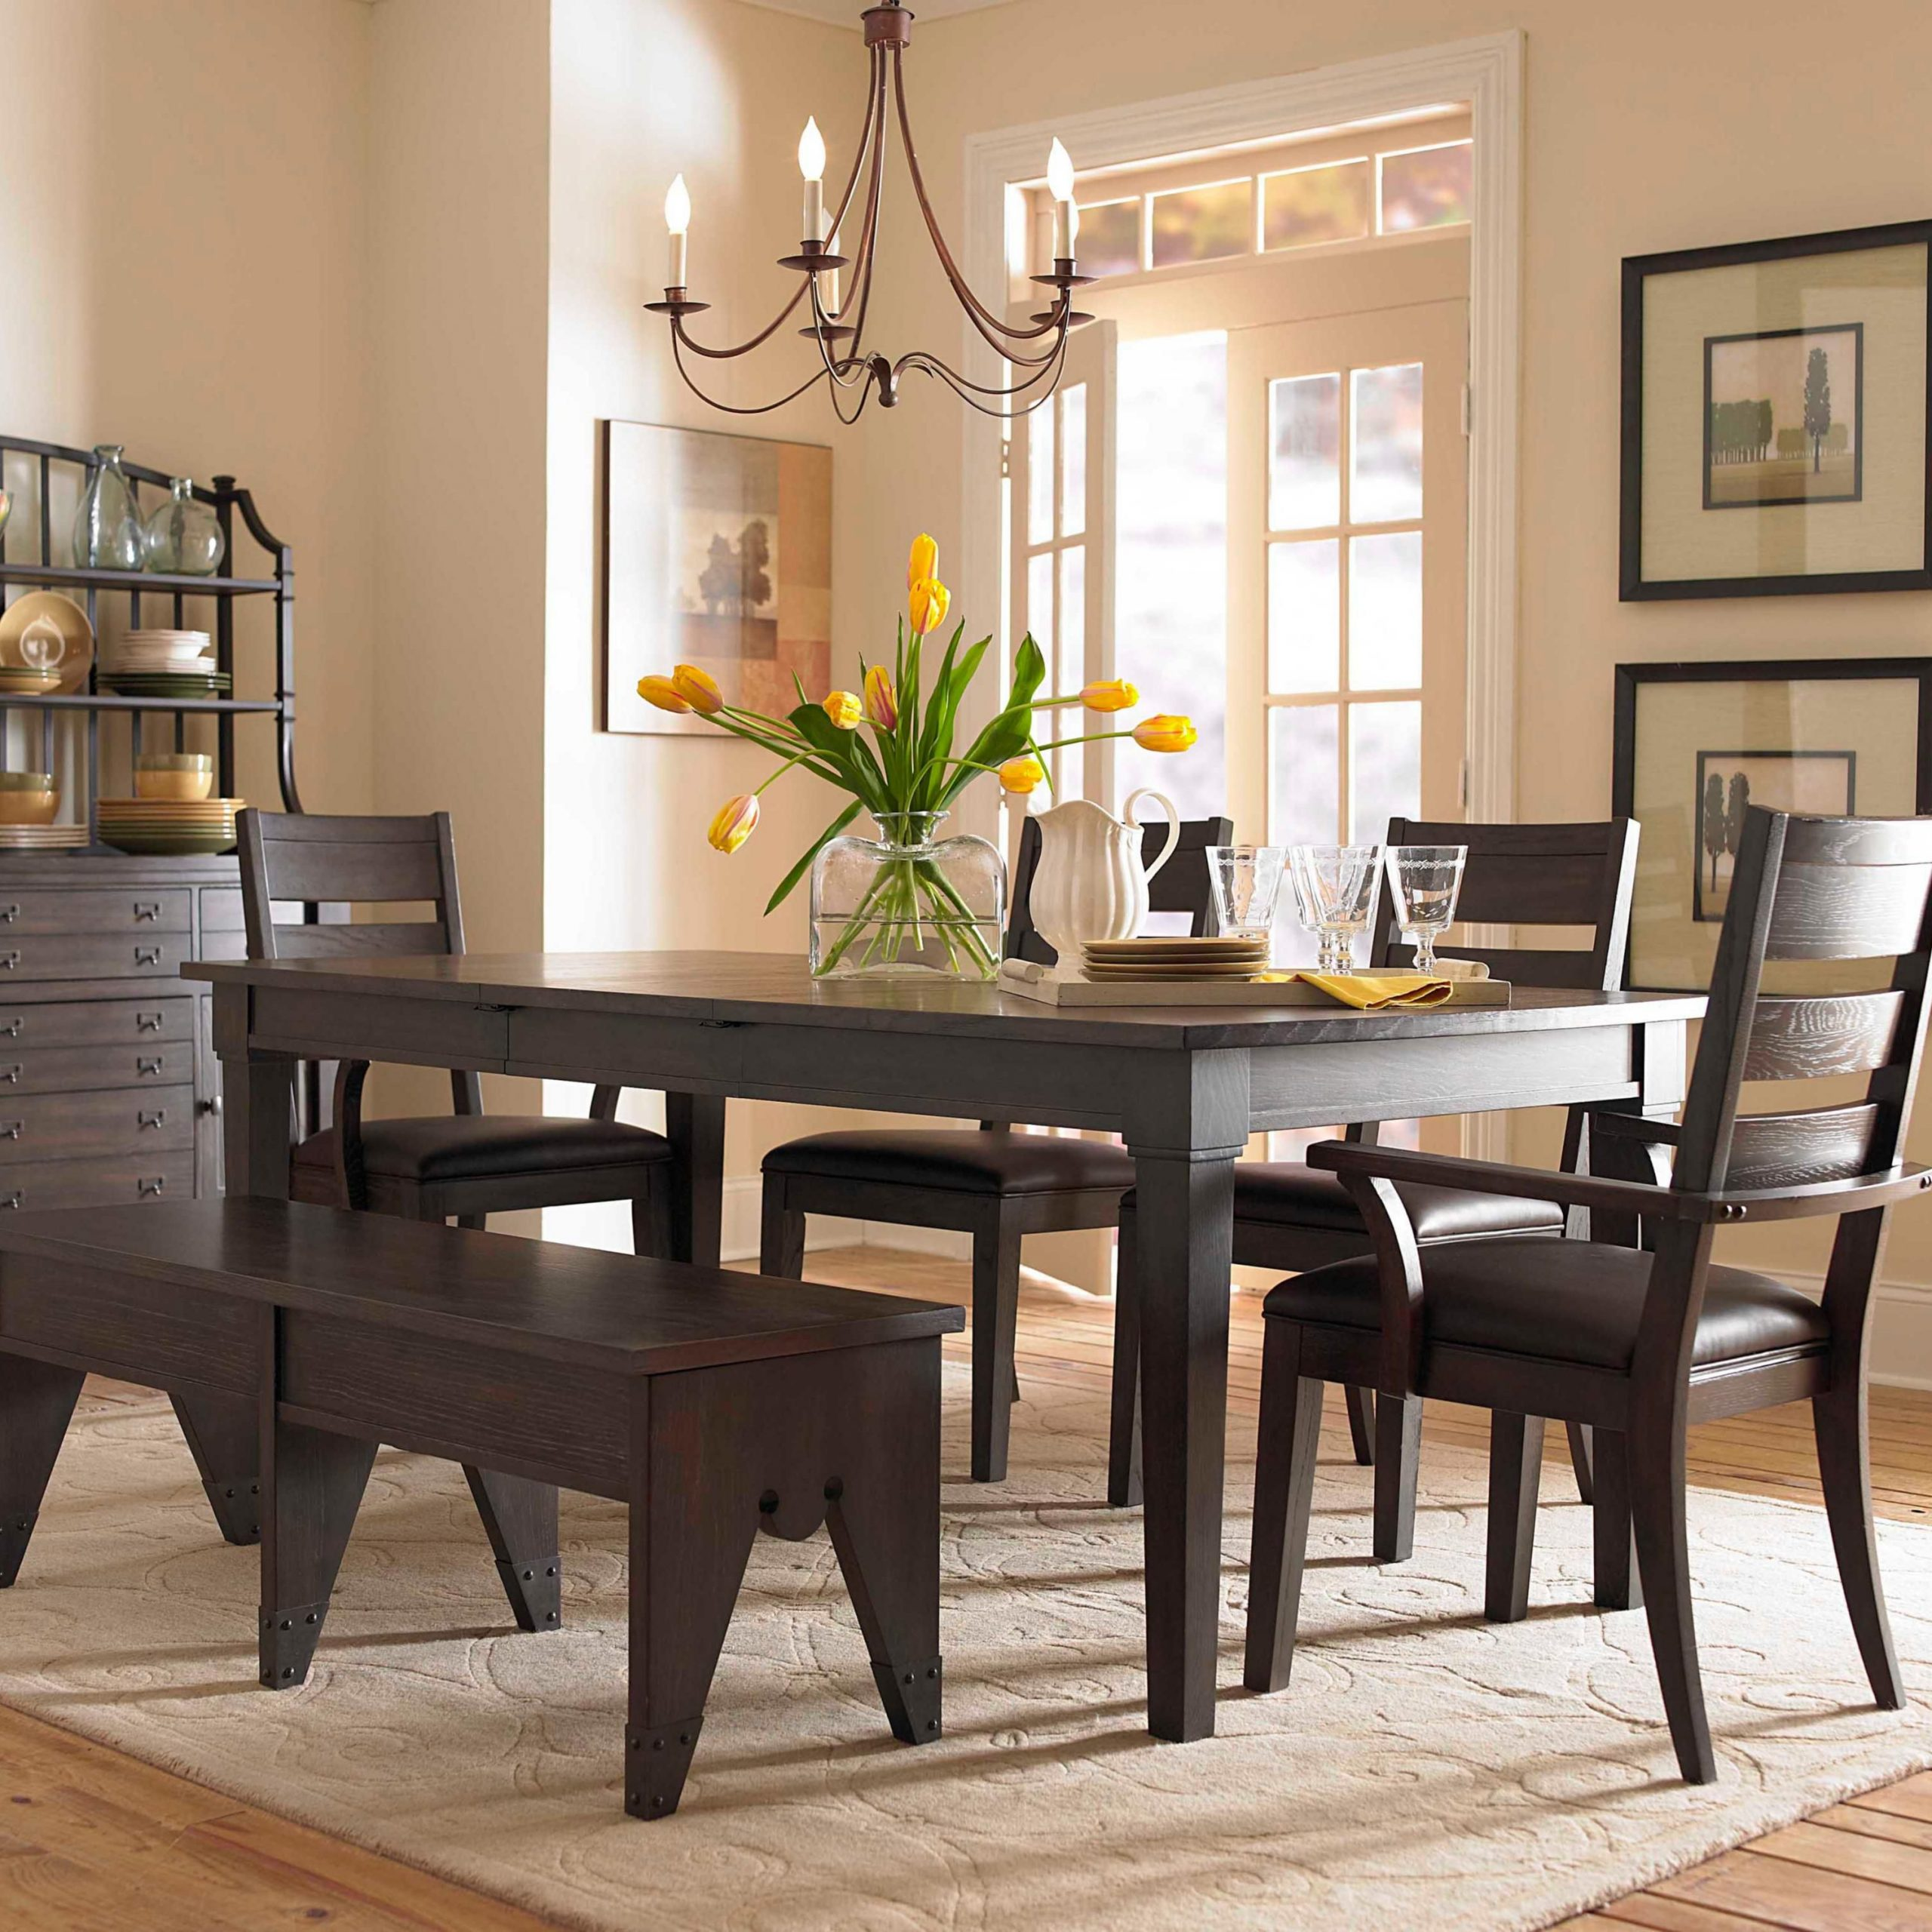 Most Popular Coaster Contemporary 6 Seating Rectangular Casual Dining Tables Regarding Broyhill Furniture: Attic Retreat 6 Piece Dining Table (View 20 of 30)